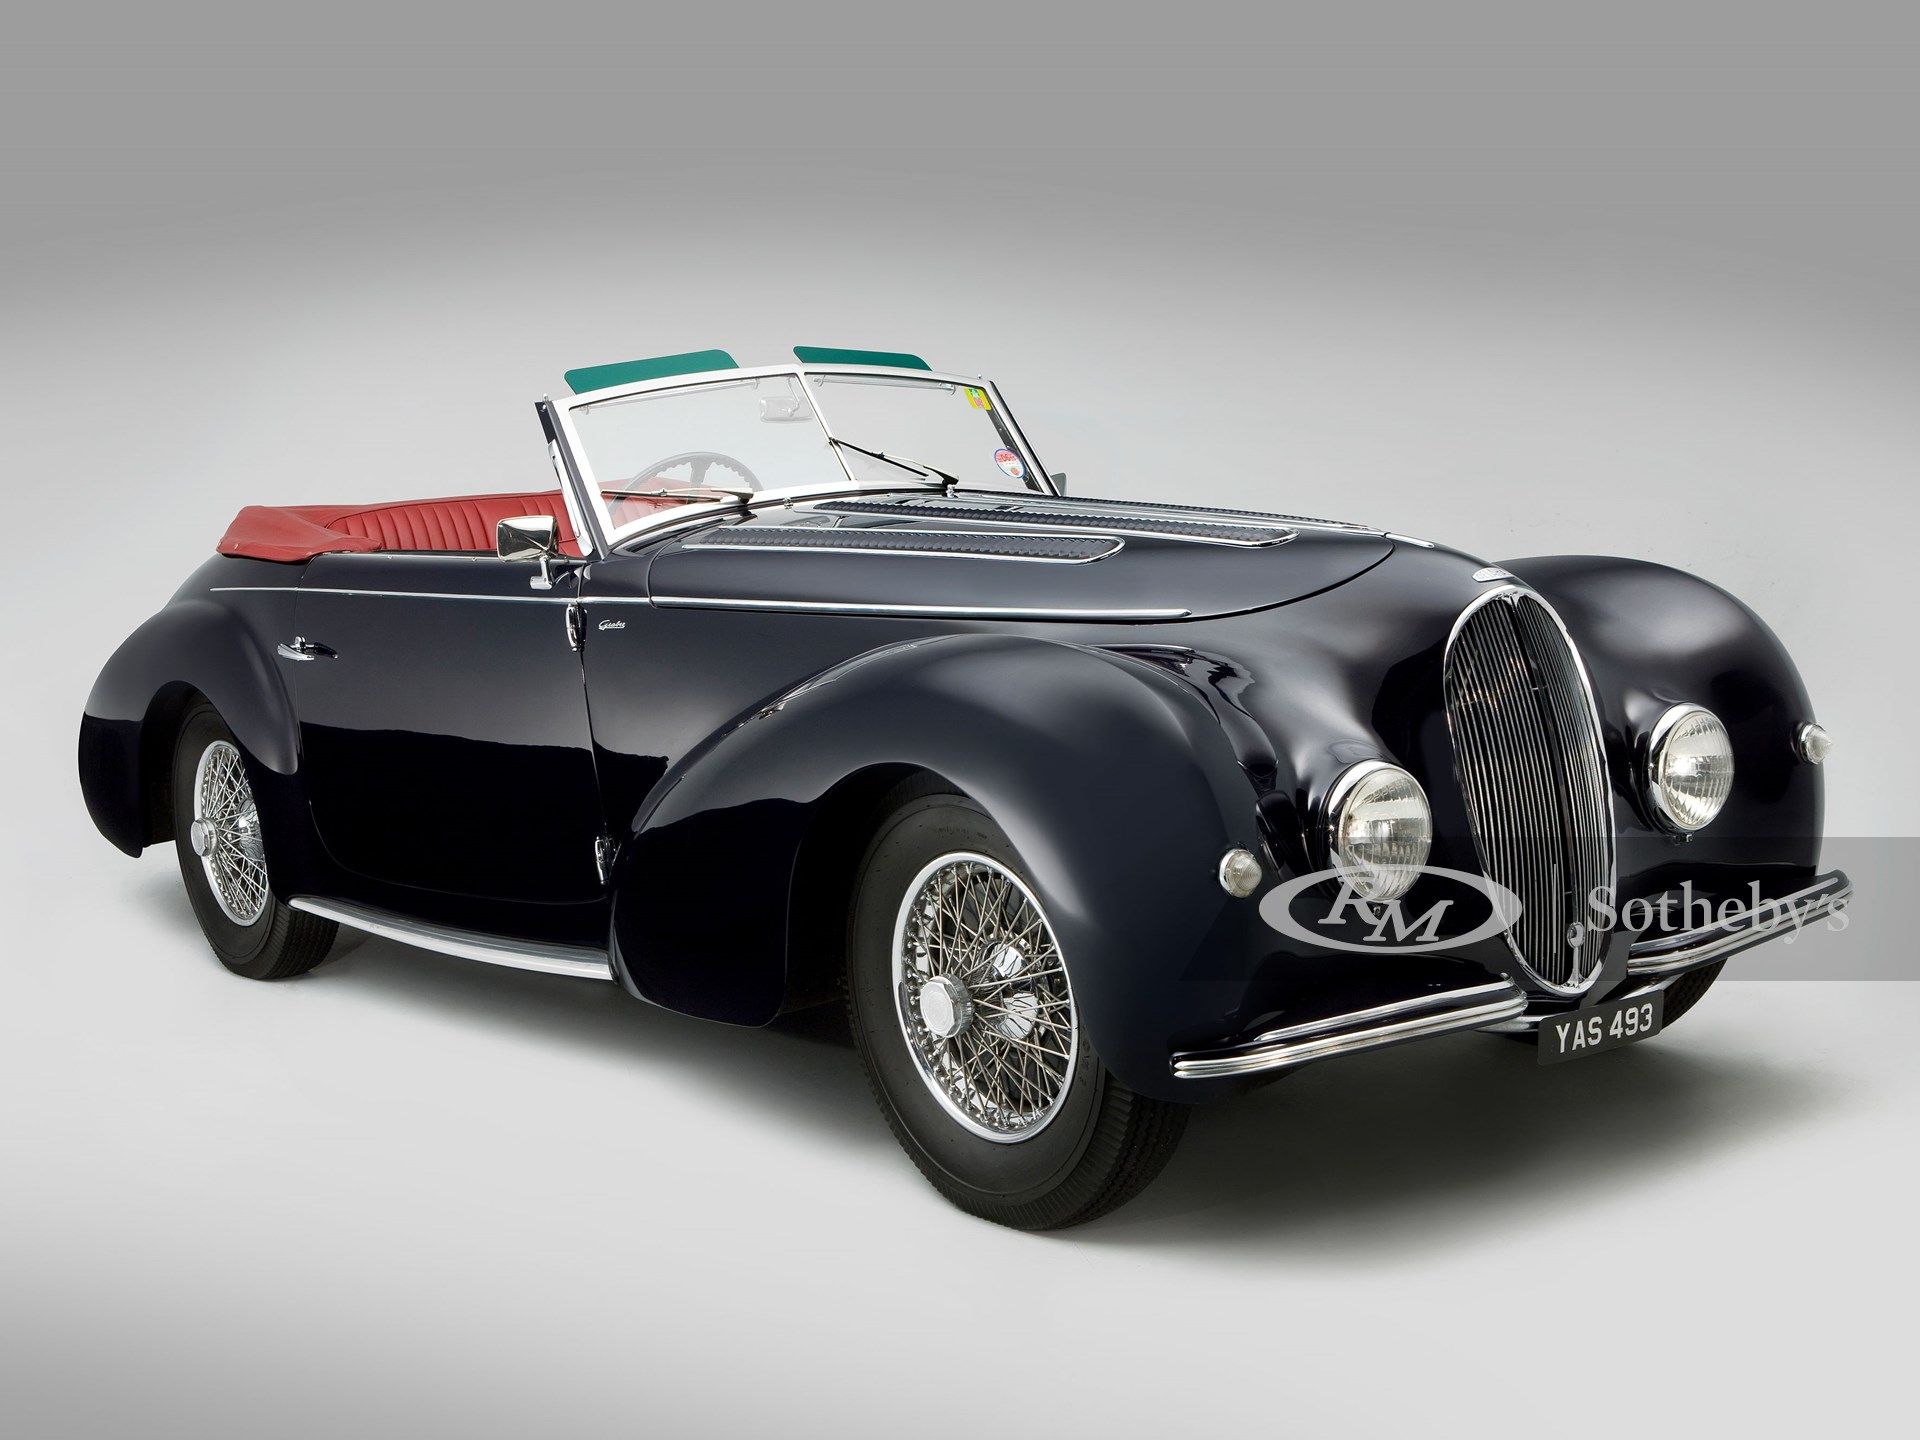 1946 Delahaye 135M Cabriolet (John Colley ©2021 Courtesy of RM Sotheby's)